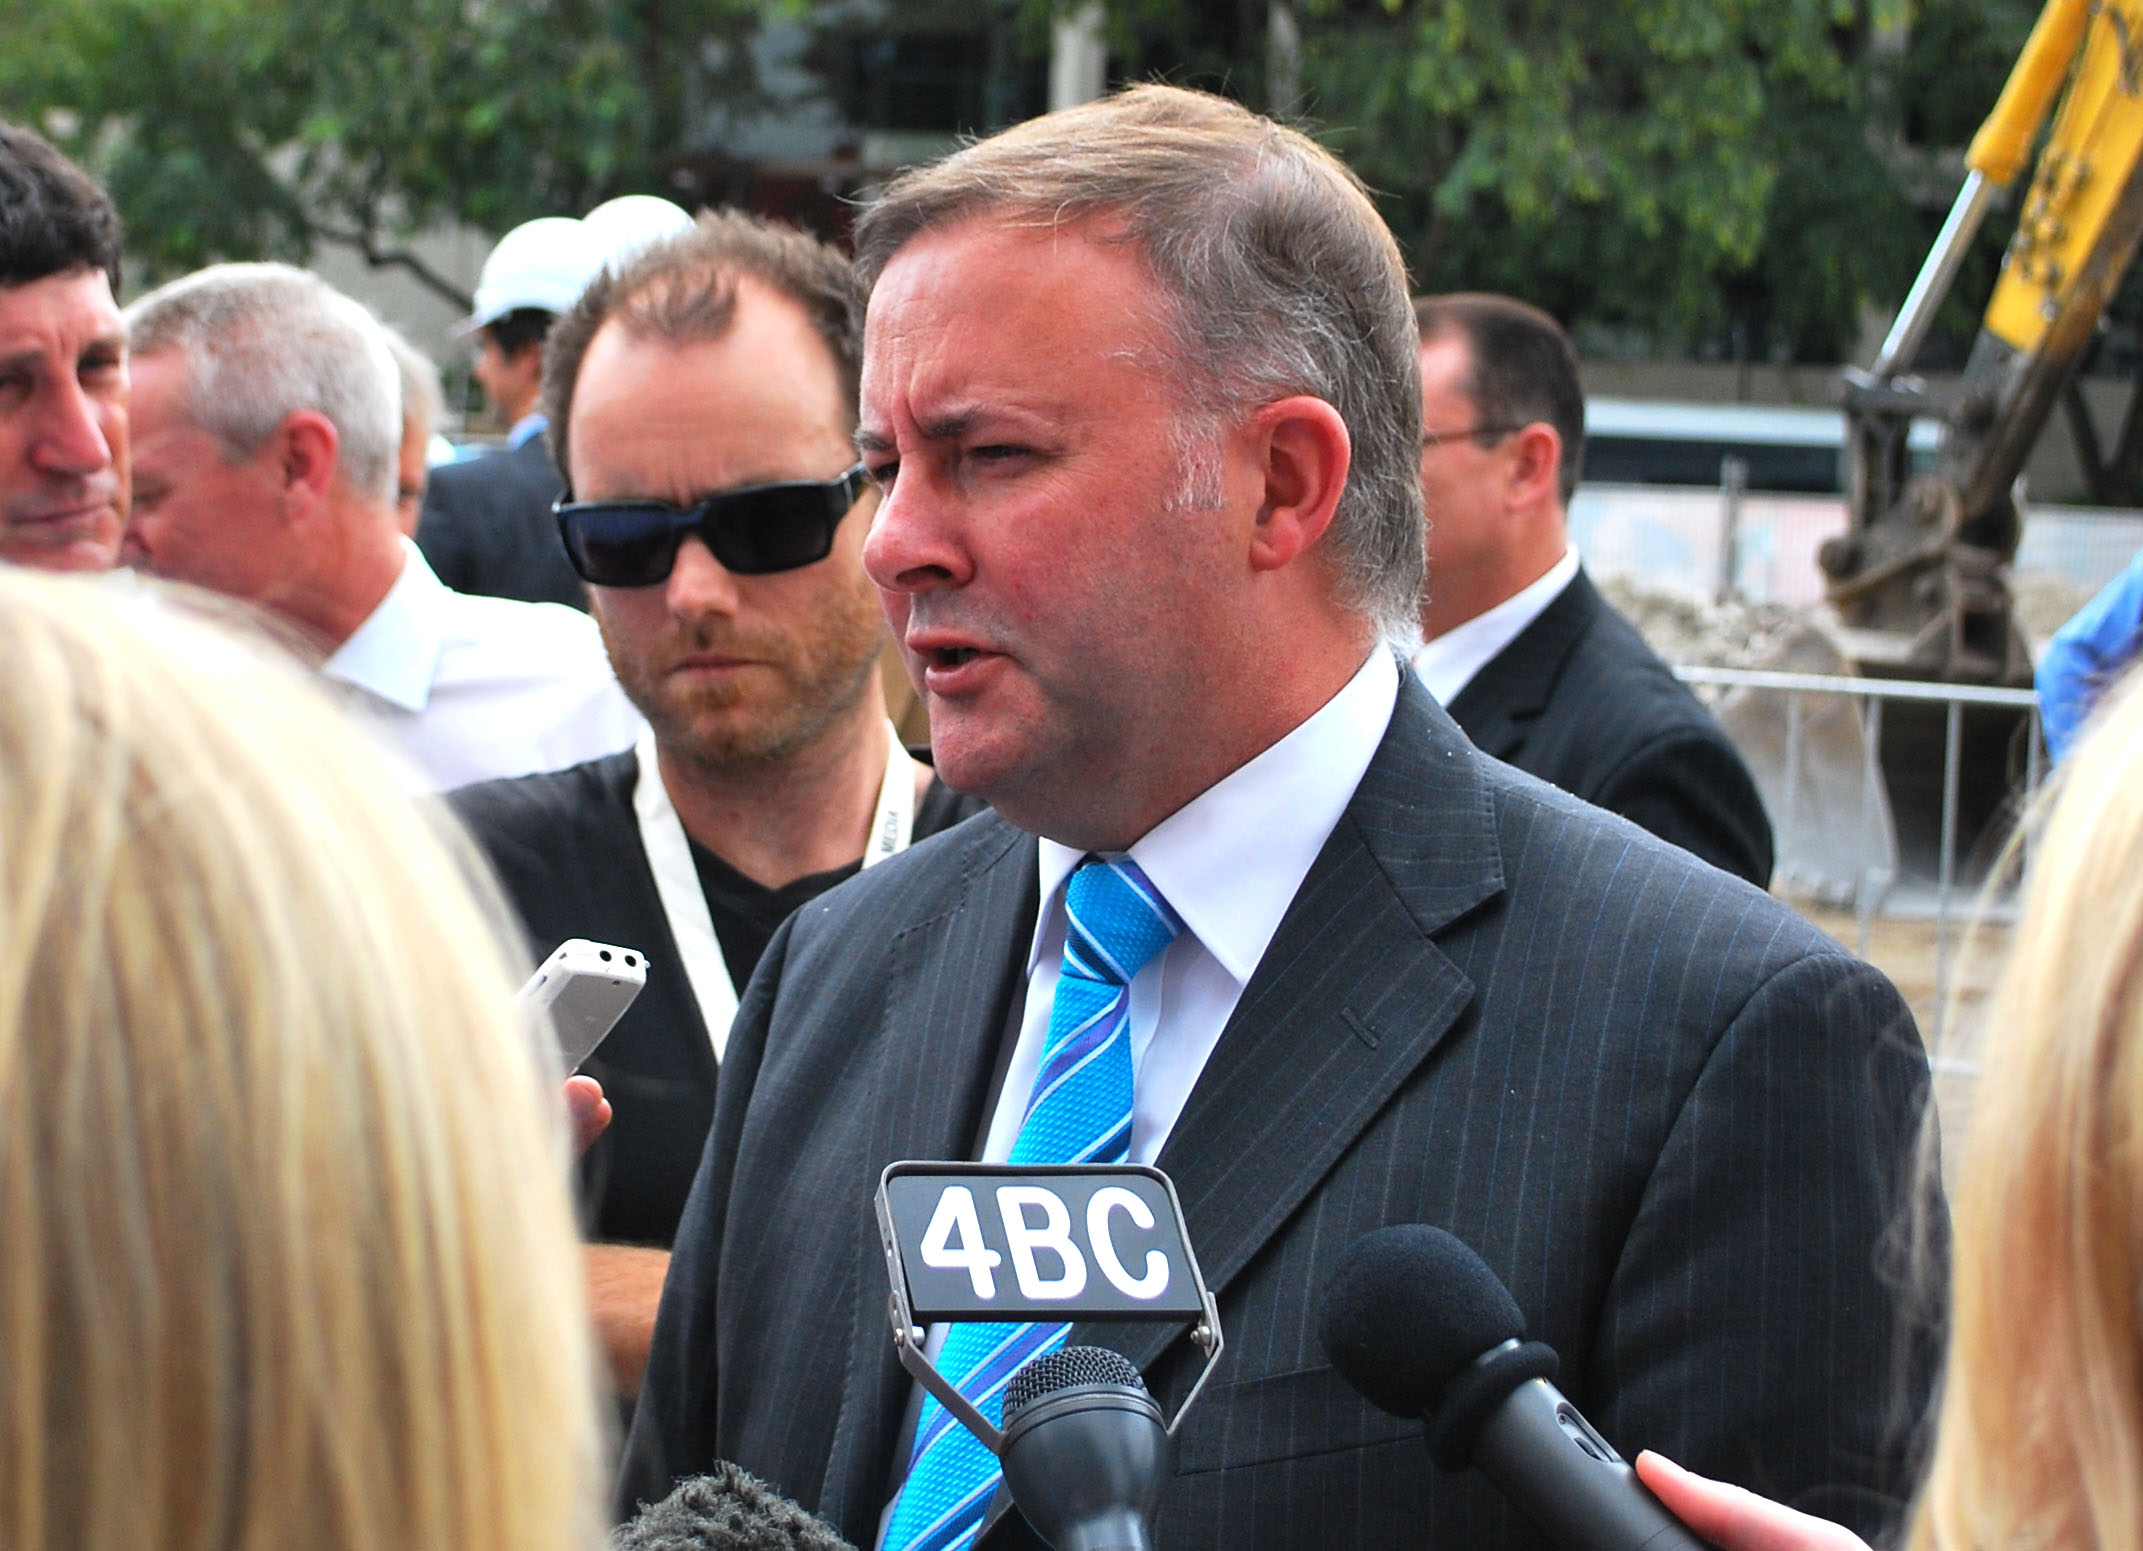 Albanese dismissed rumors that Shorten is still interested in Labor leadership